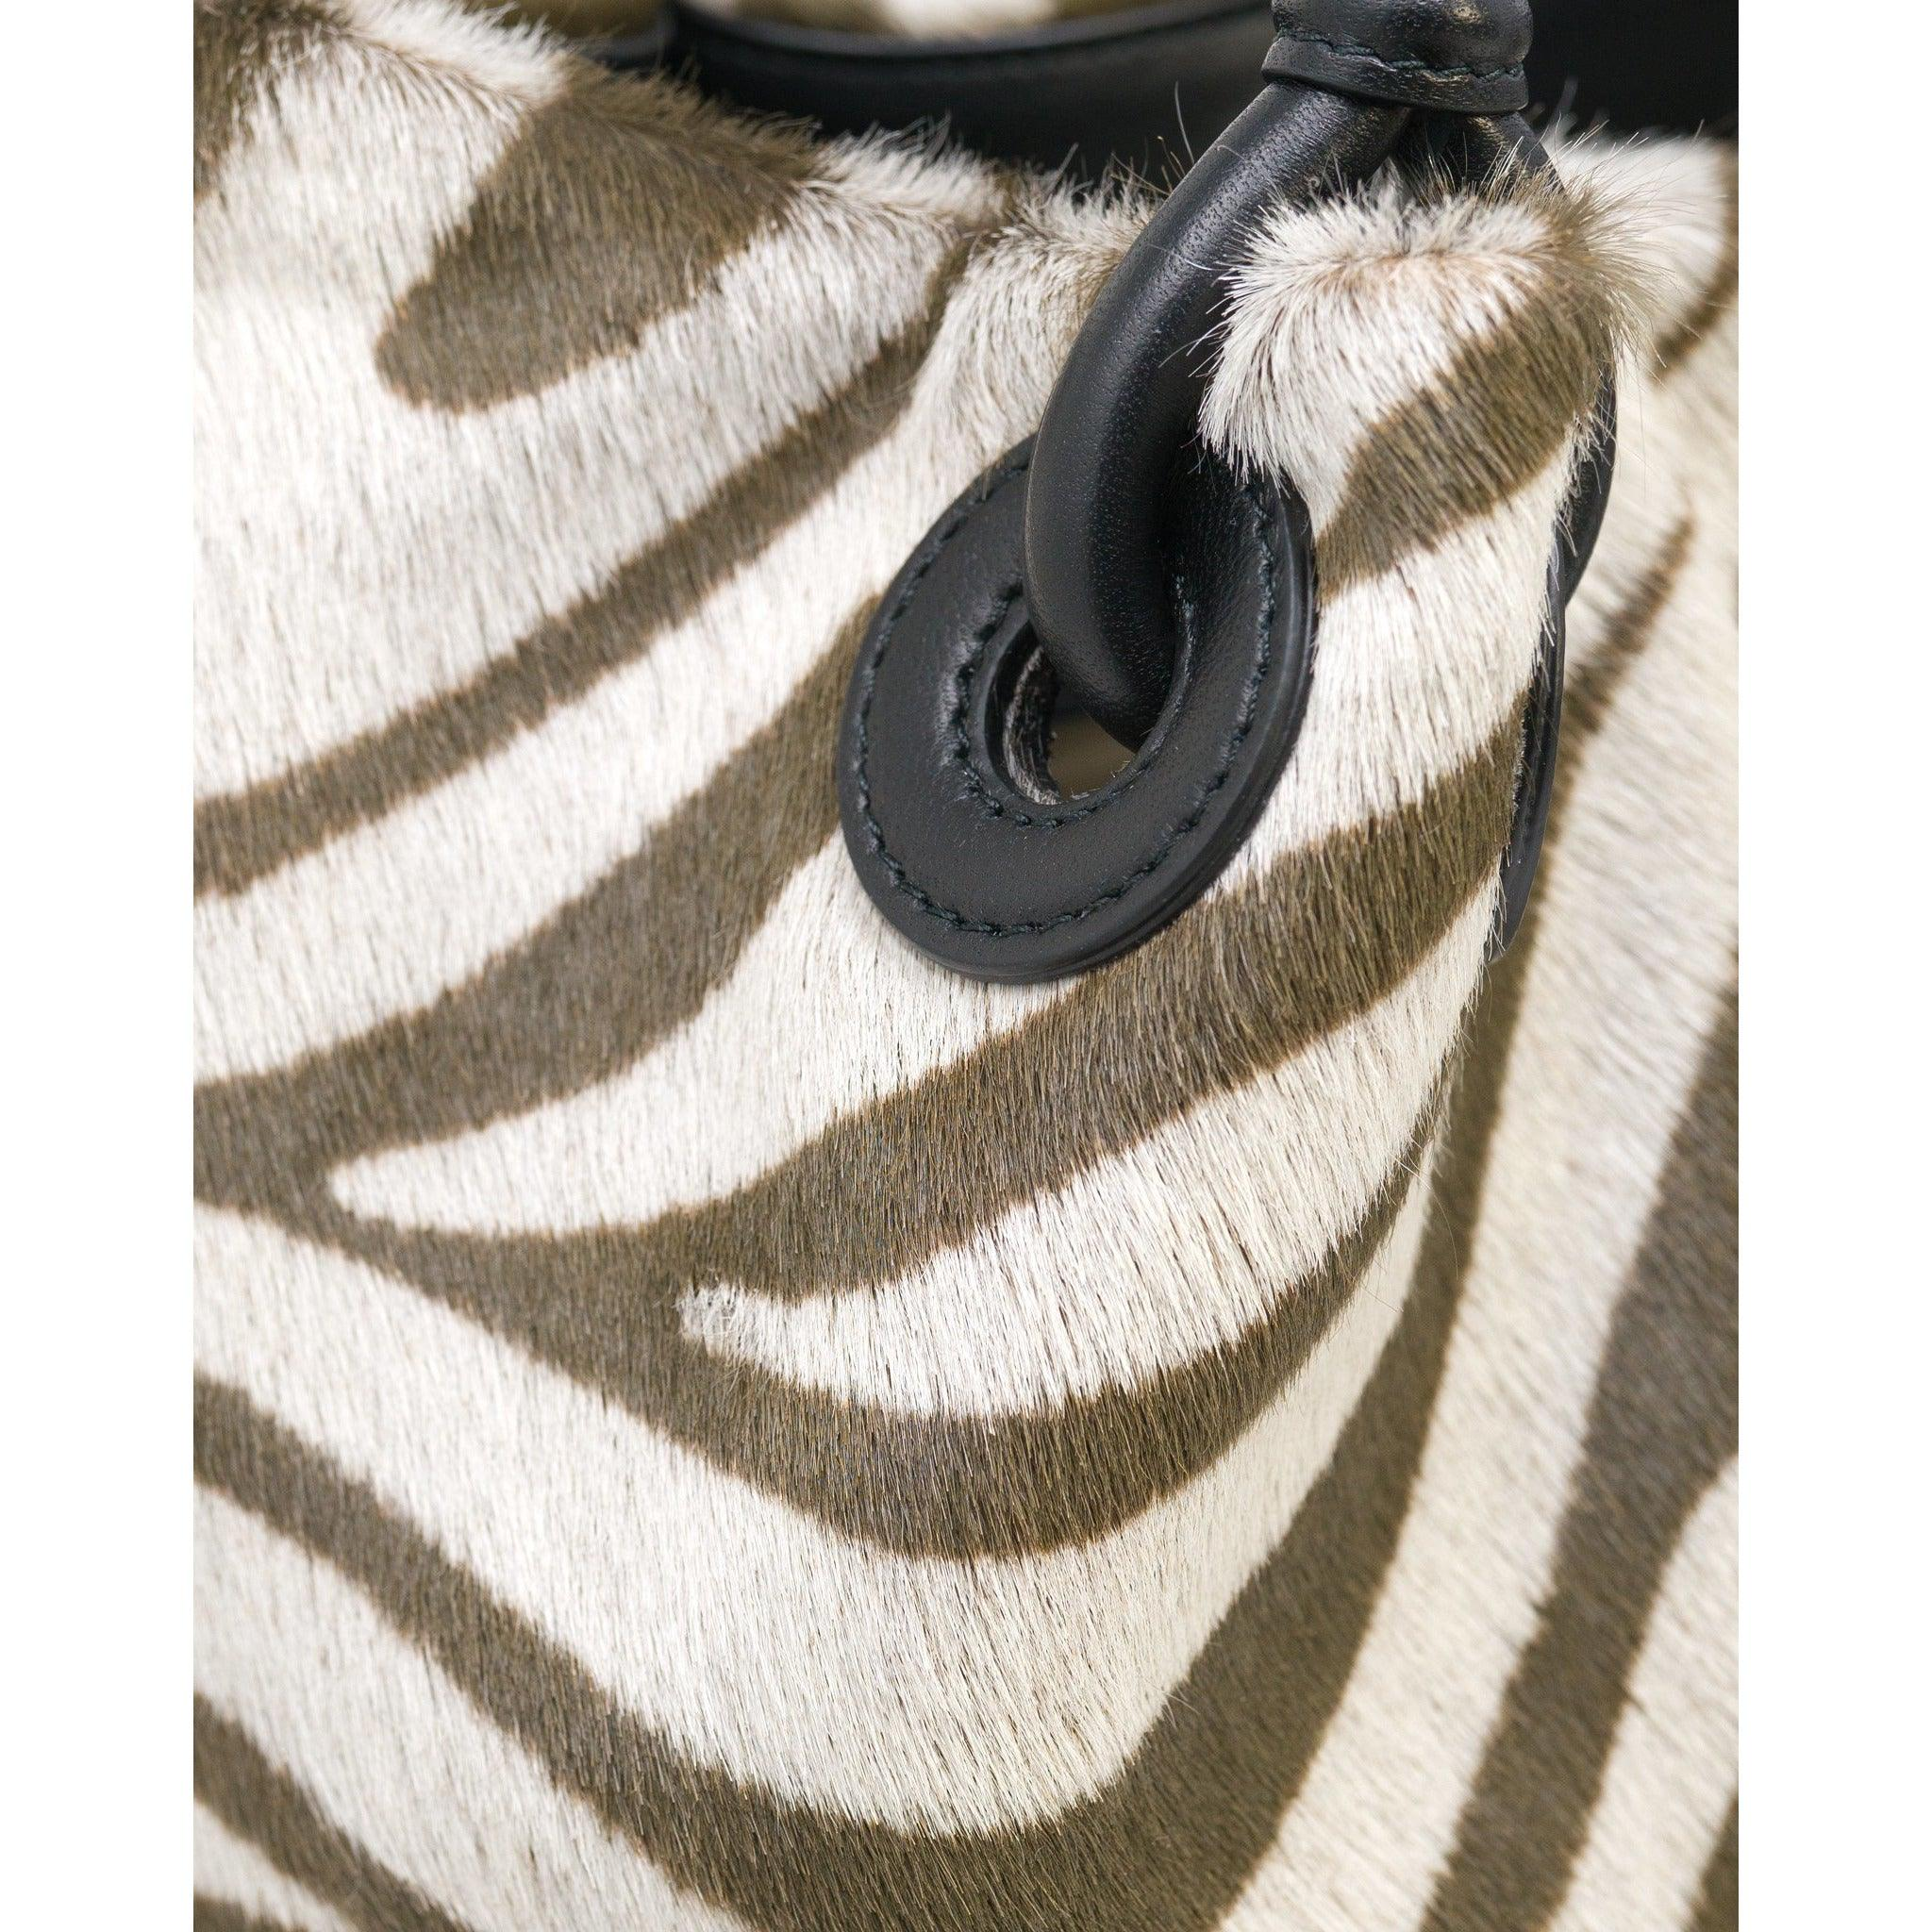 JT304 555230 Zebra Lamb Hair Leather Shoulder Bag - New Fall Winter 2019-2020 Collection